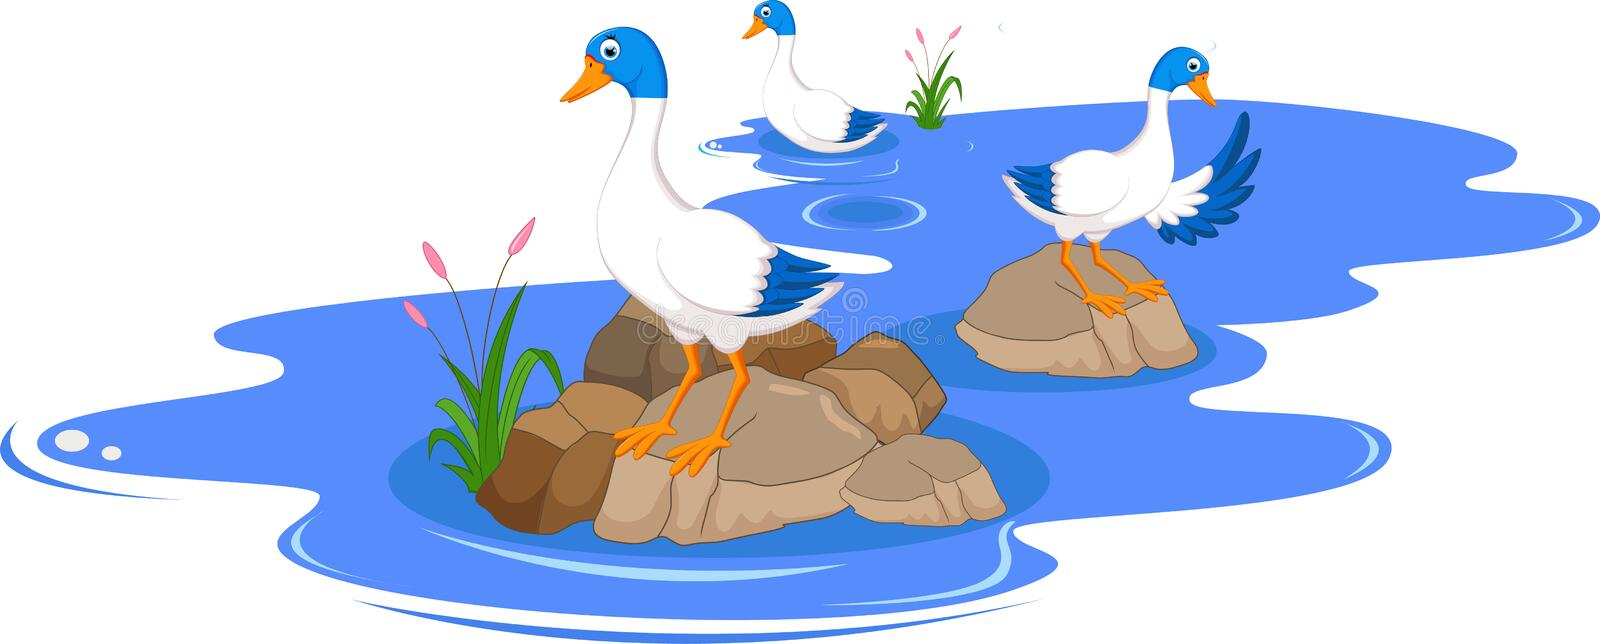 Funny Cartoon ducks on the pond White Background. Illustration of Funny Cartoon ducks on the pond White Background vector illustration